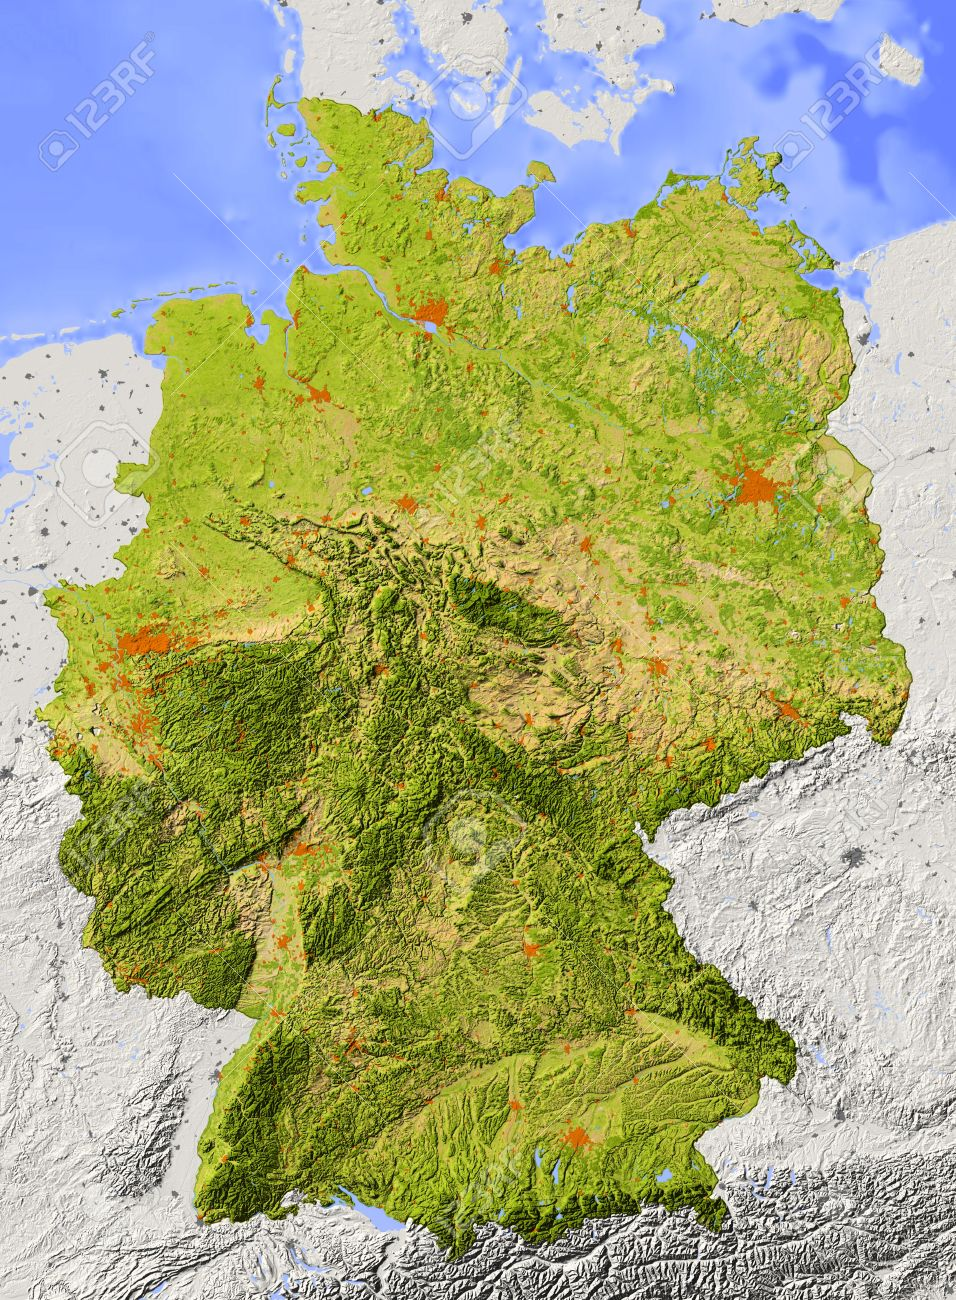 Elevation Map Of Germany.Germany Shaded Relief Map Surrounding Territory Greyed Out